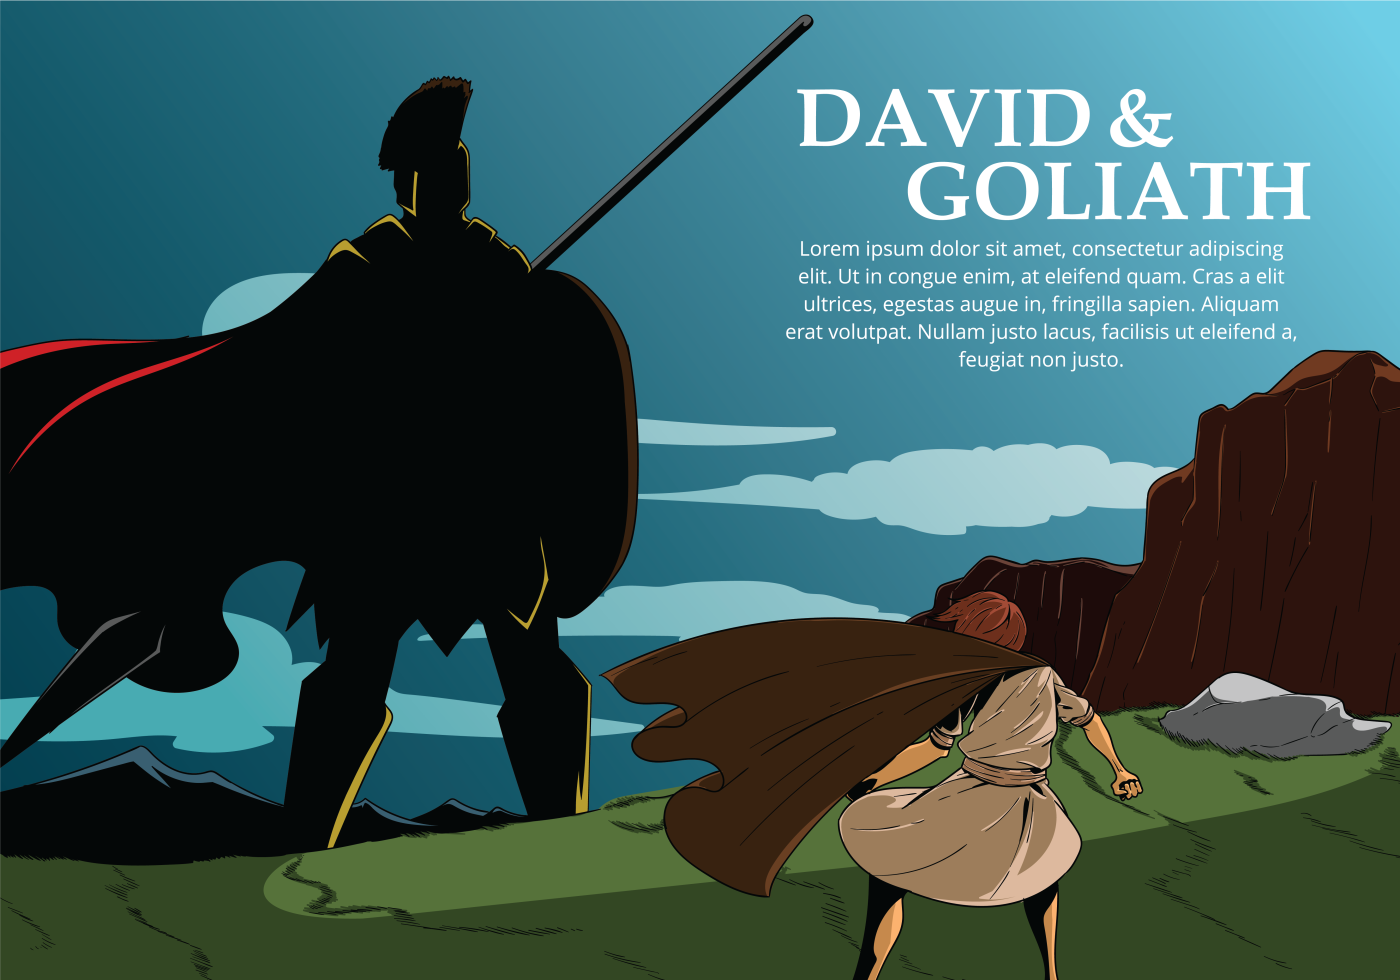 david and goliath vector illustration download free armor of god clip art for kids armor of god clip art free